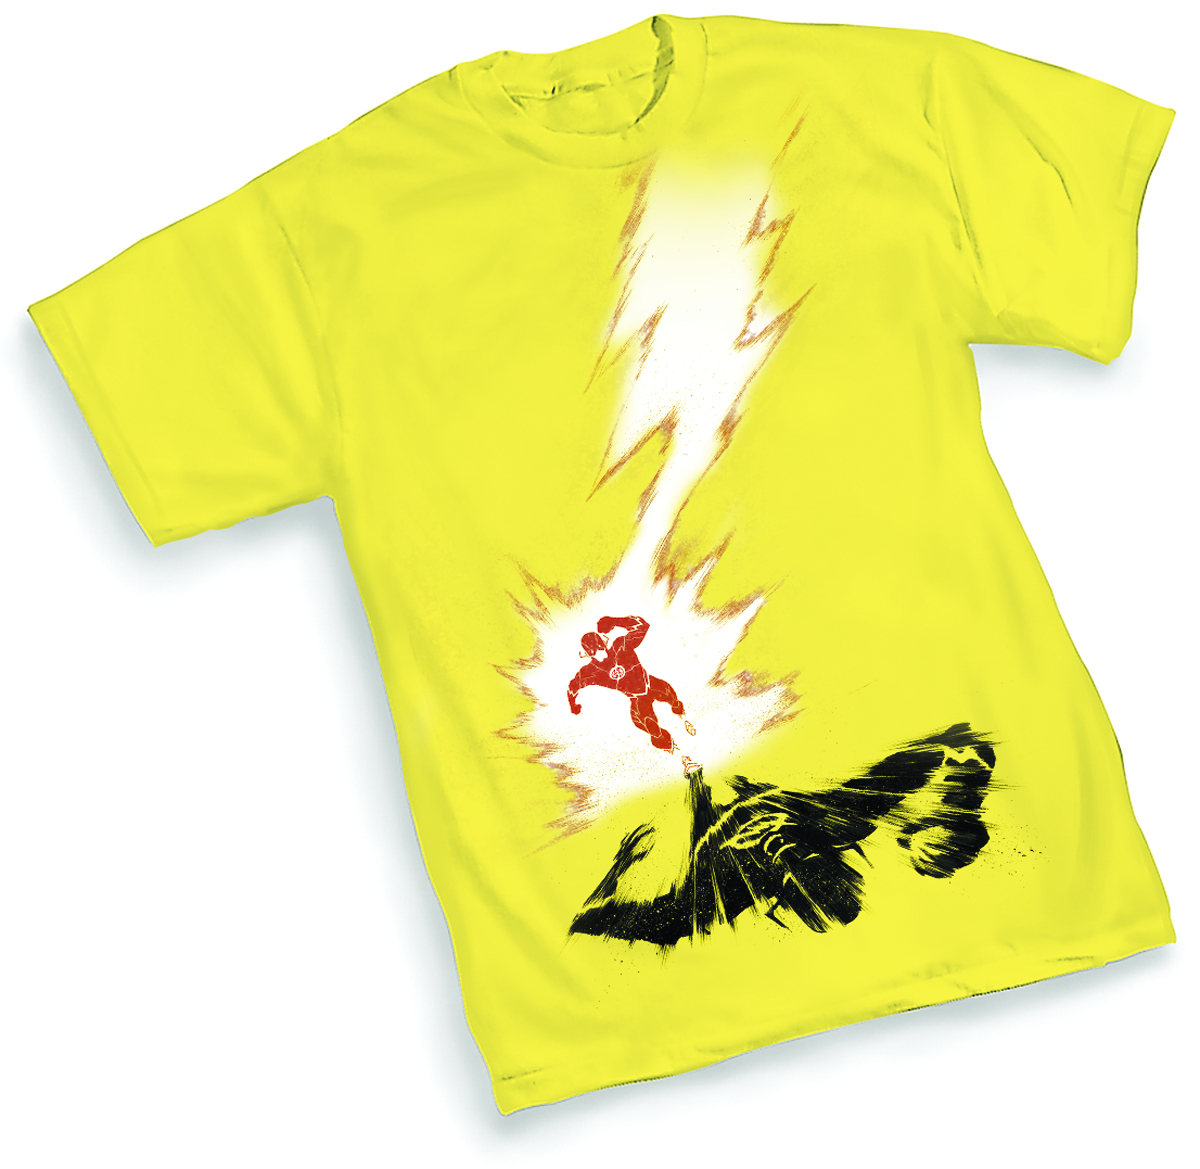 FLASH BOLT BY MANAPUL T/S XXL